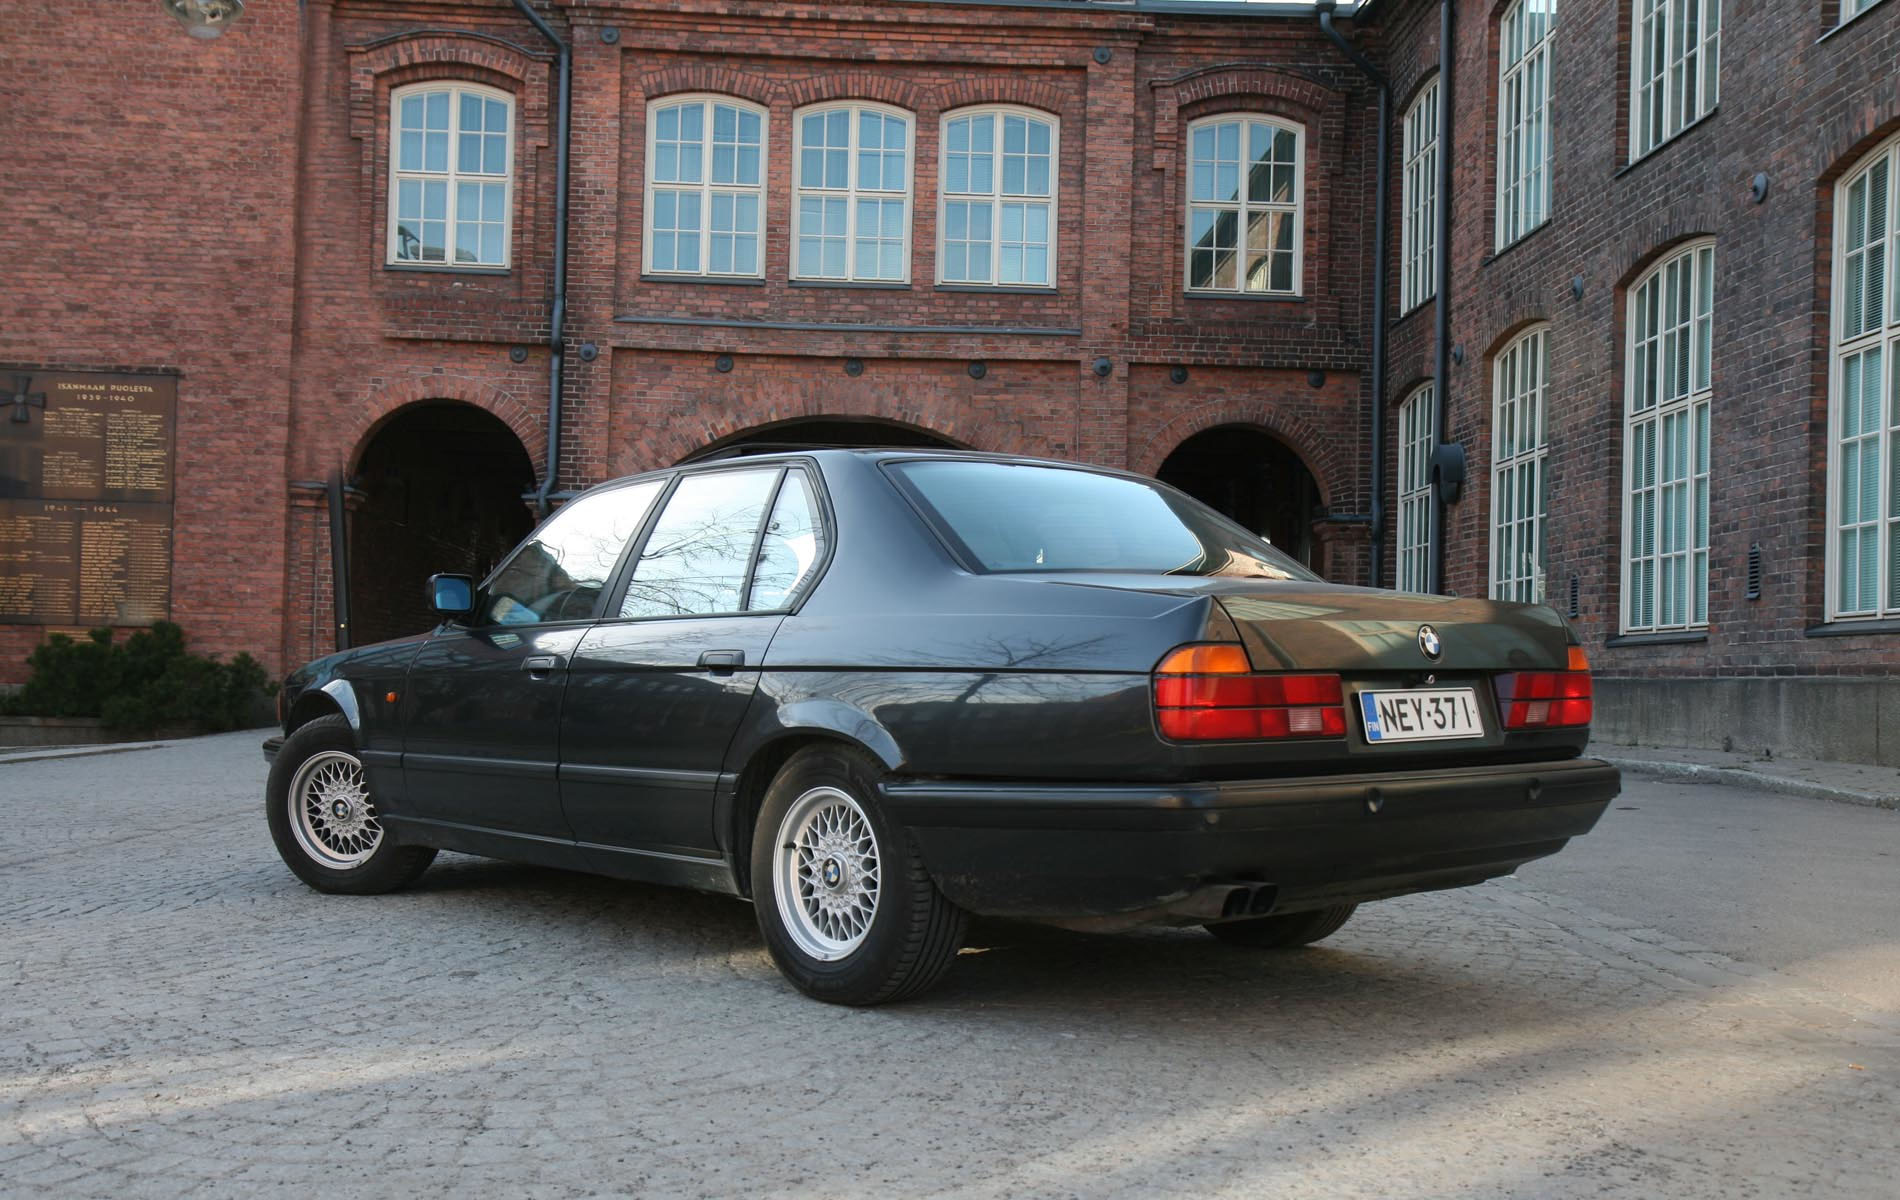 On this page we present you the most successful photo gallery of BMW 750 iAL